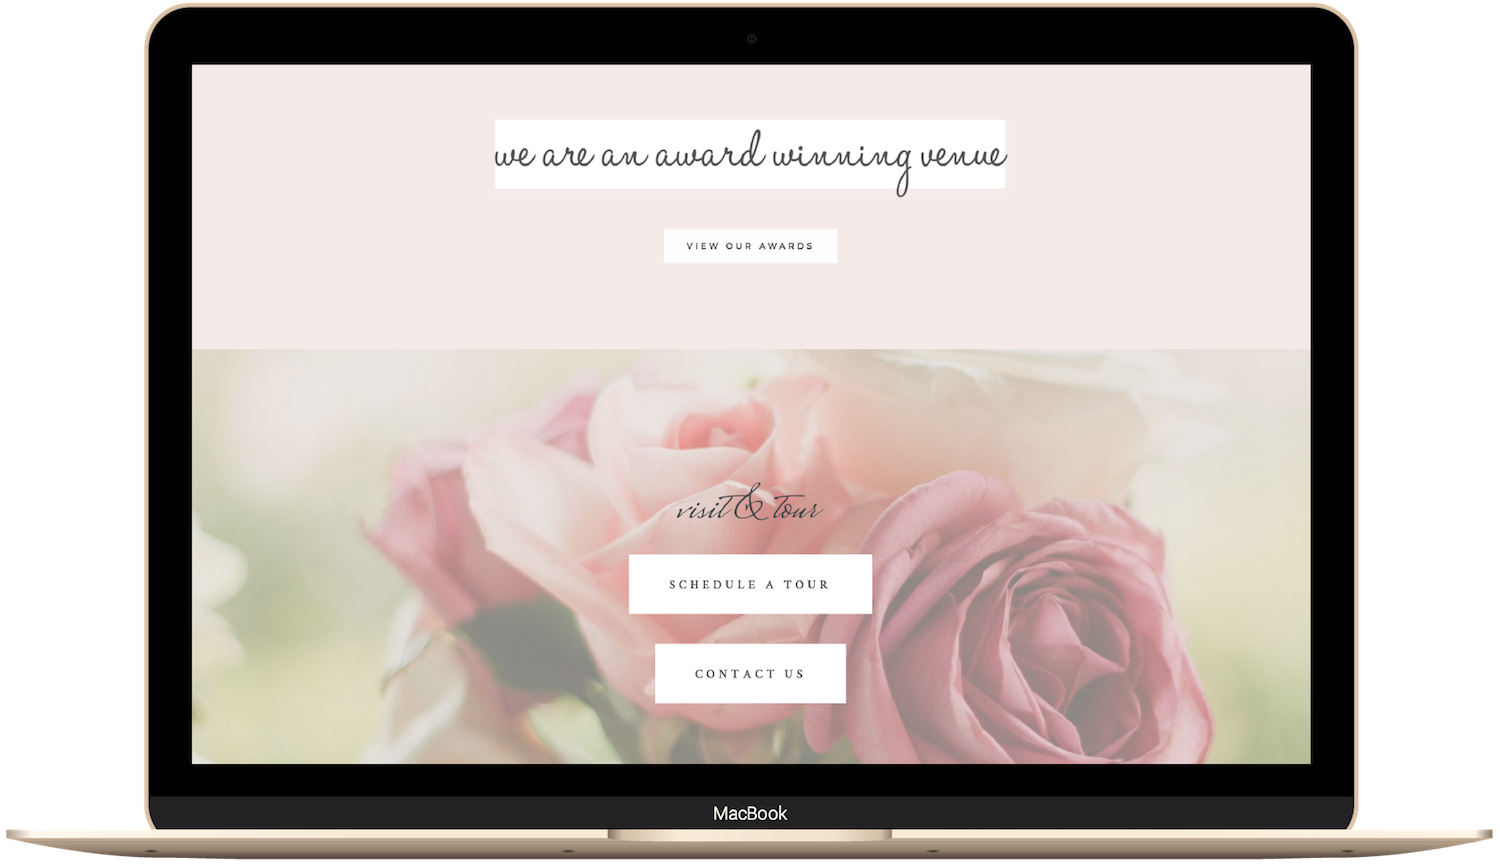 squarespace website example of wedding venue.png